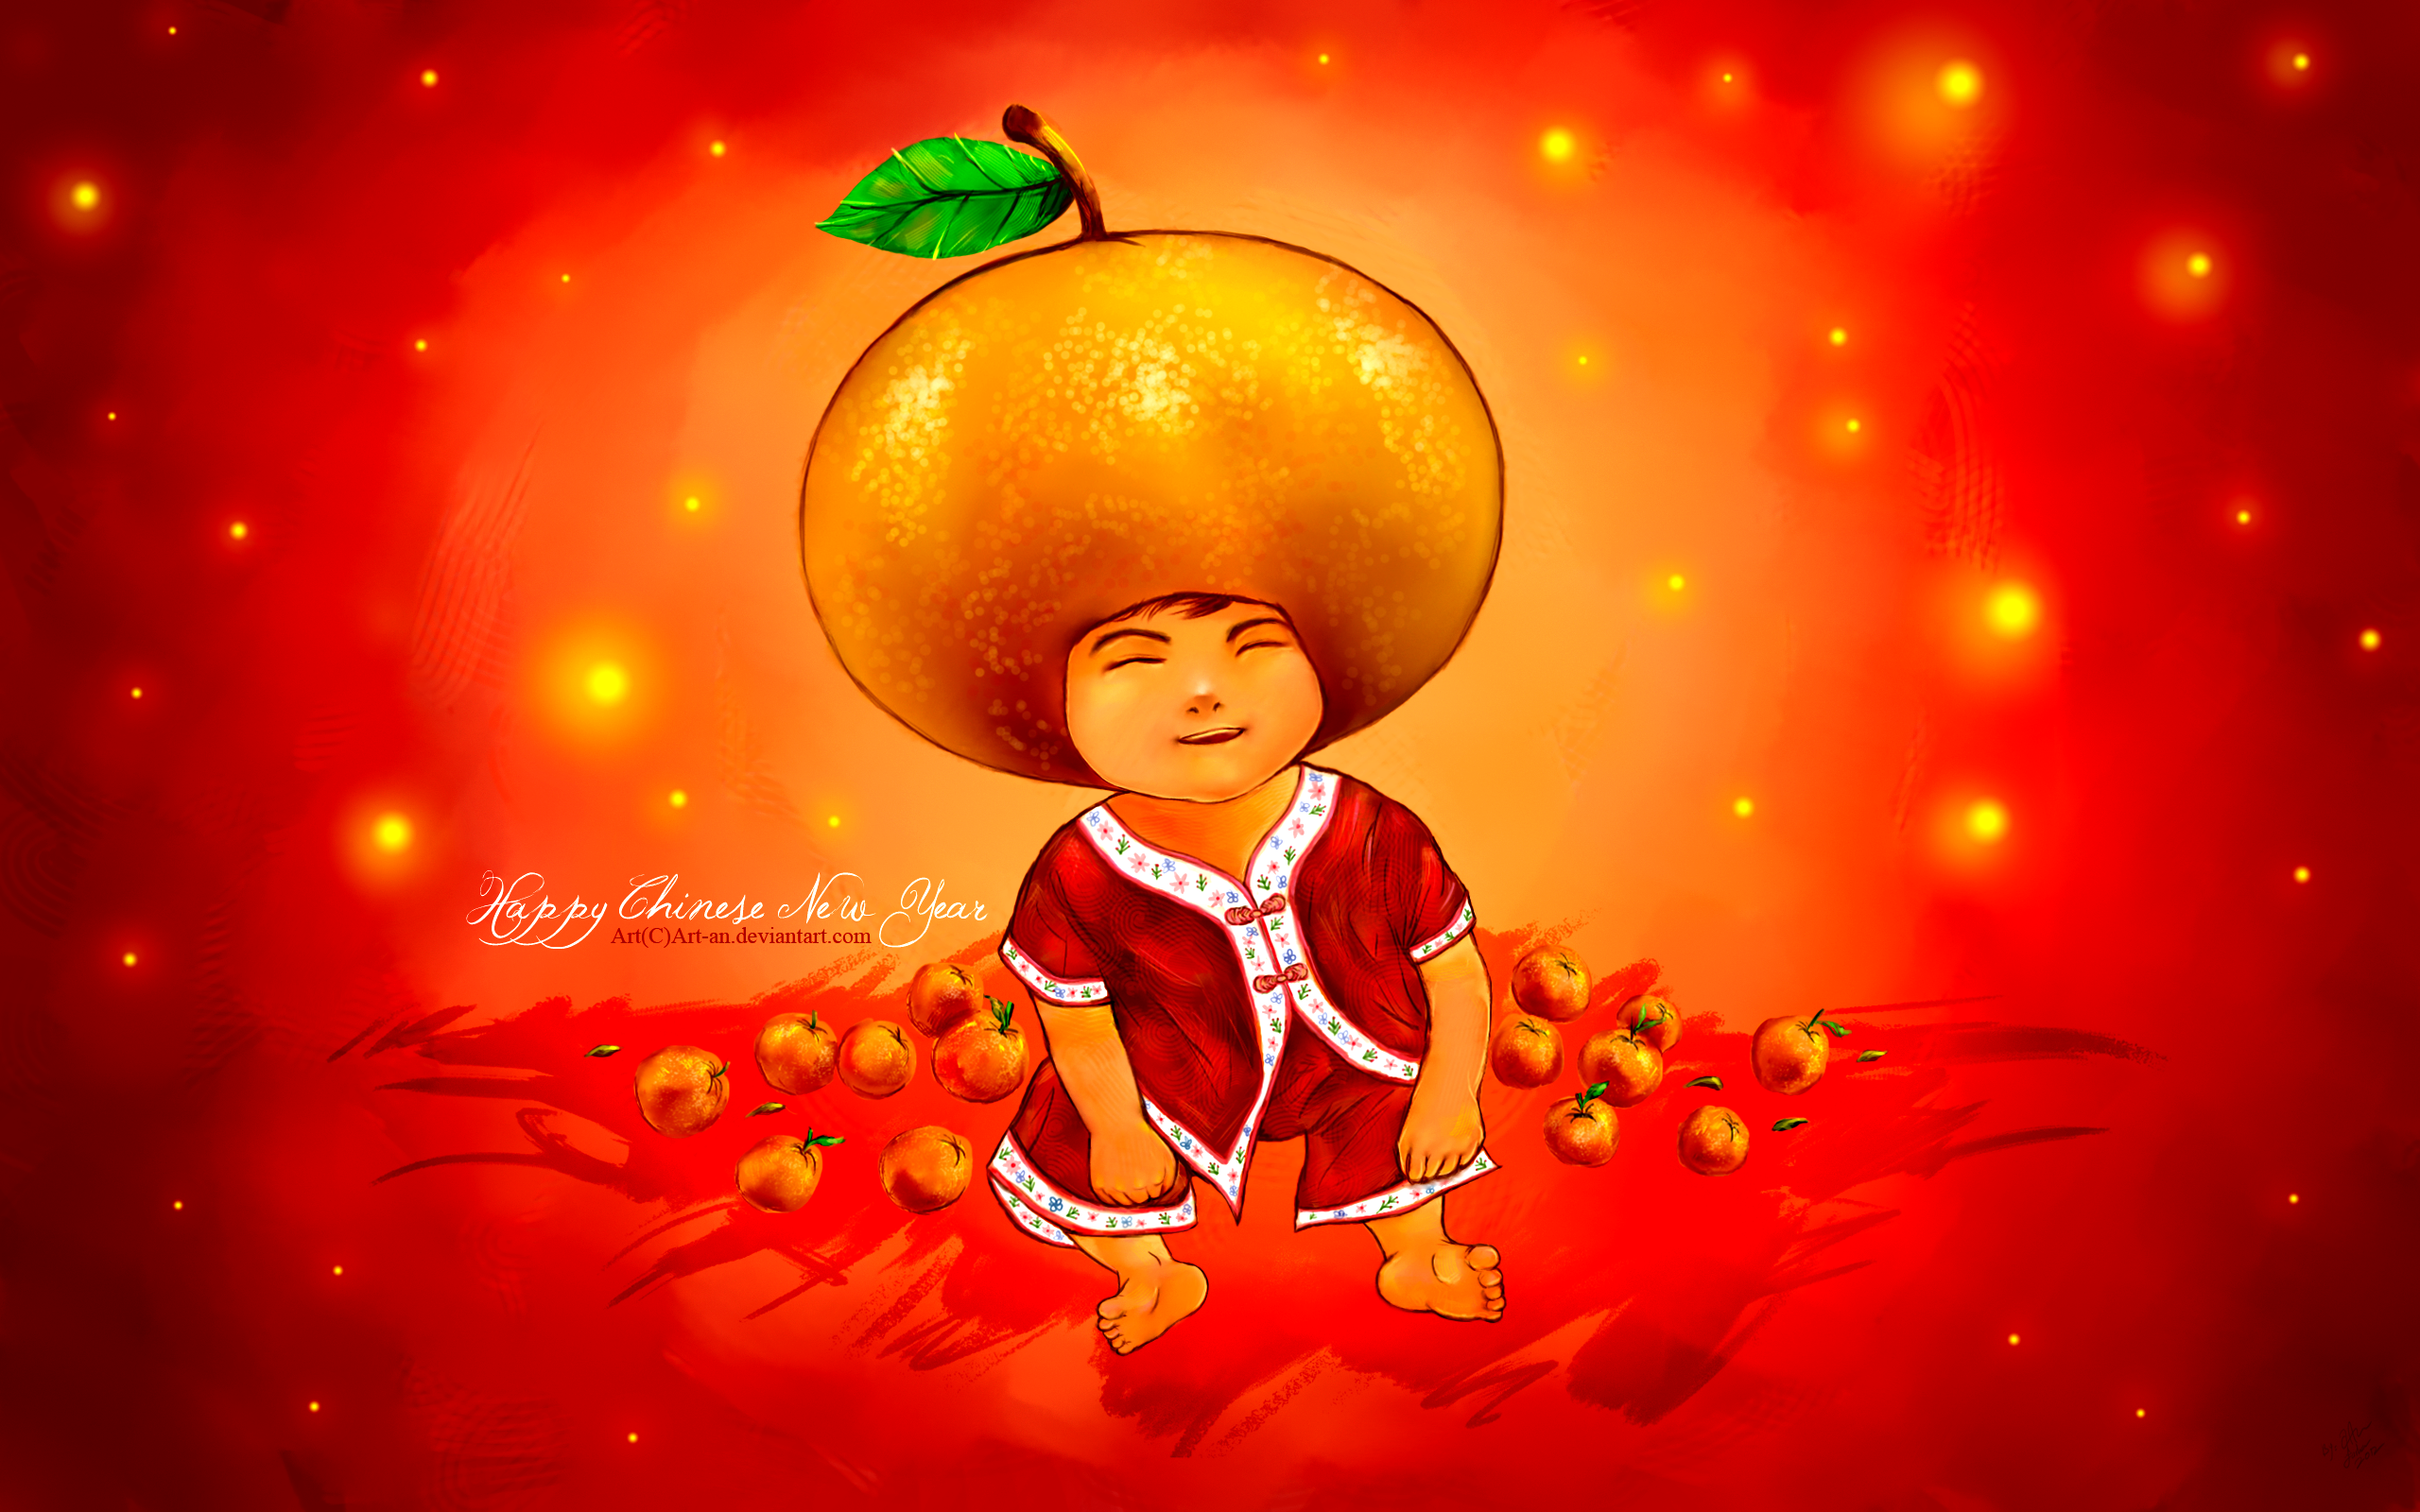 Happy Chinese New Year Wallpaper Backgrounds 12737 Wallpaper Cool 2560x1600